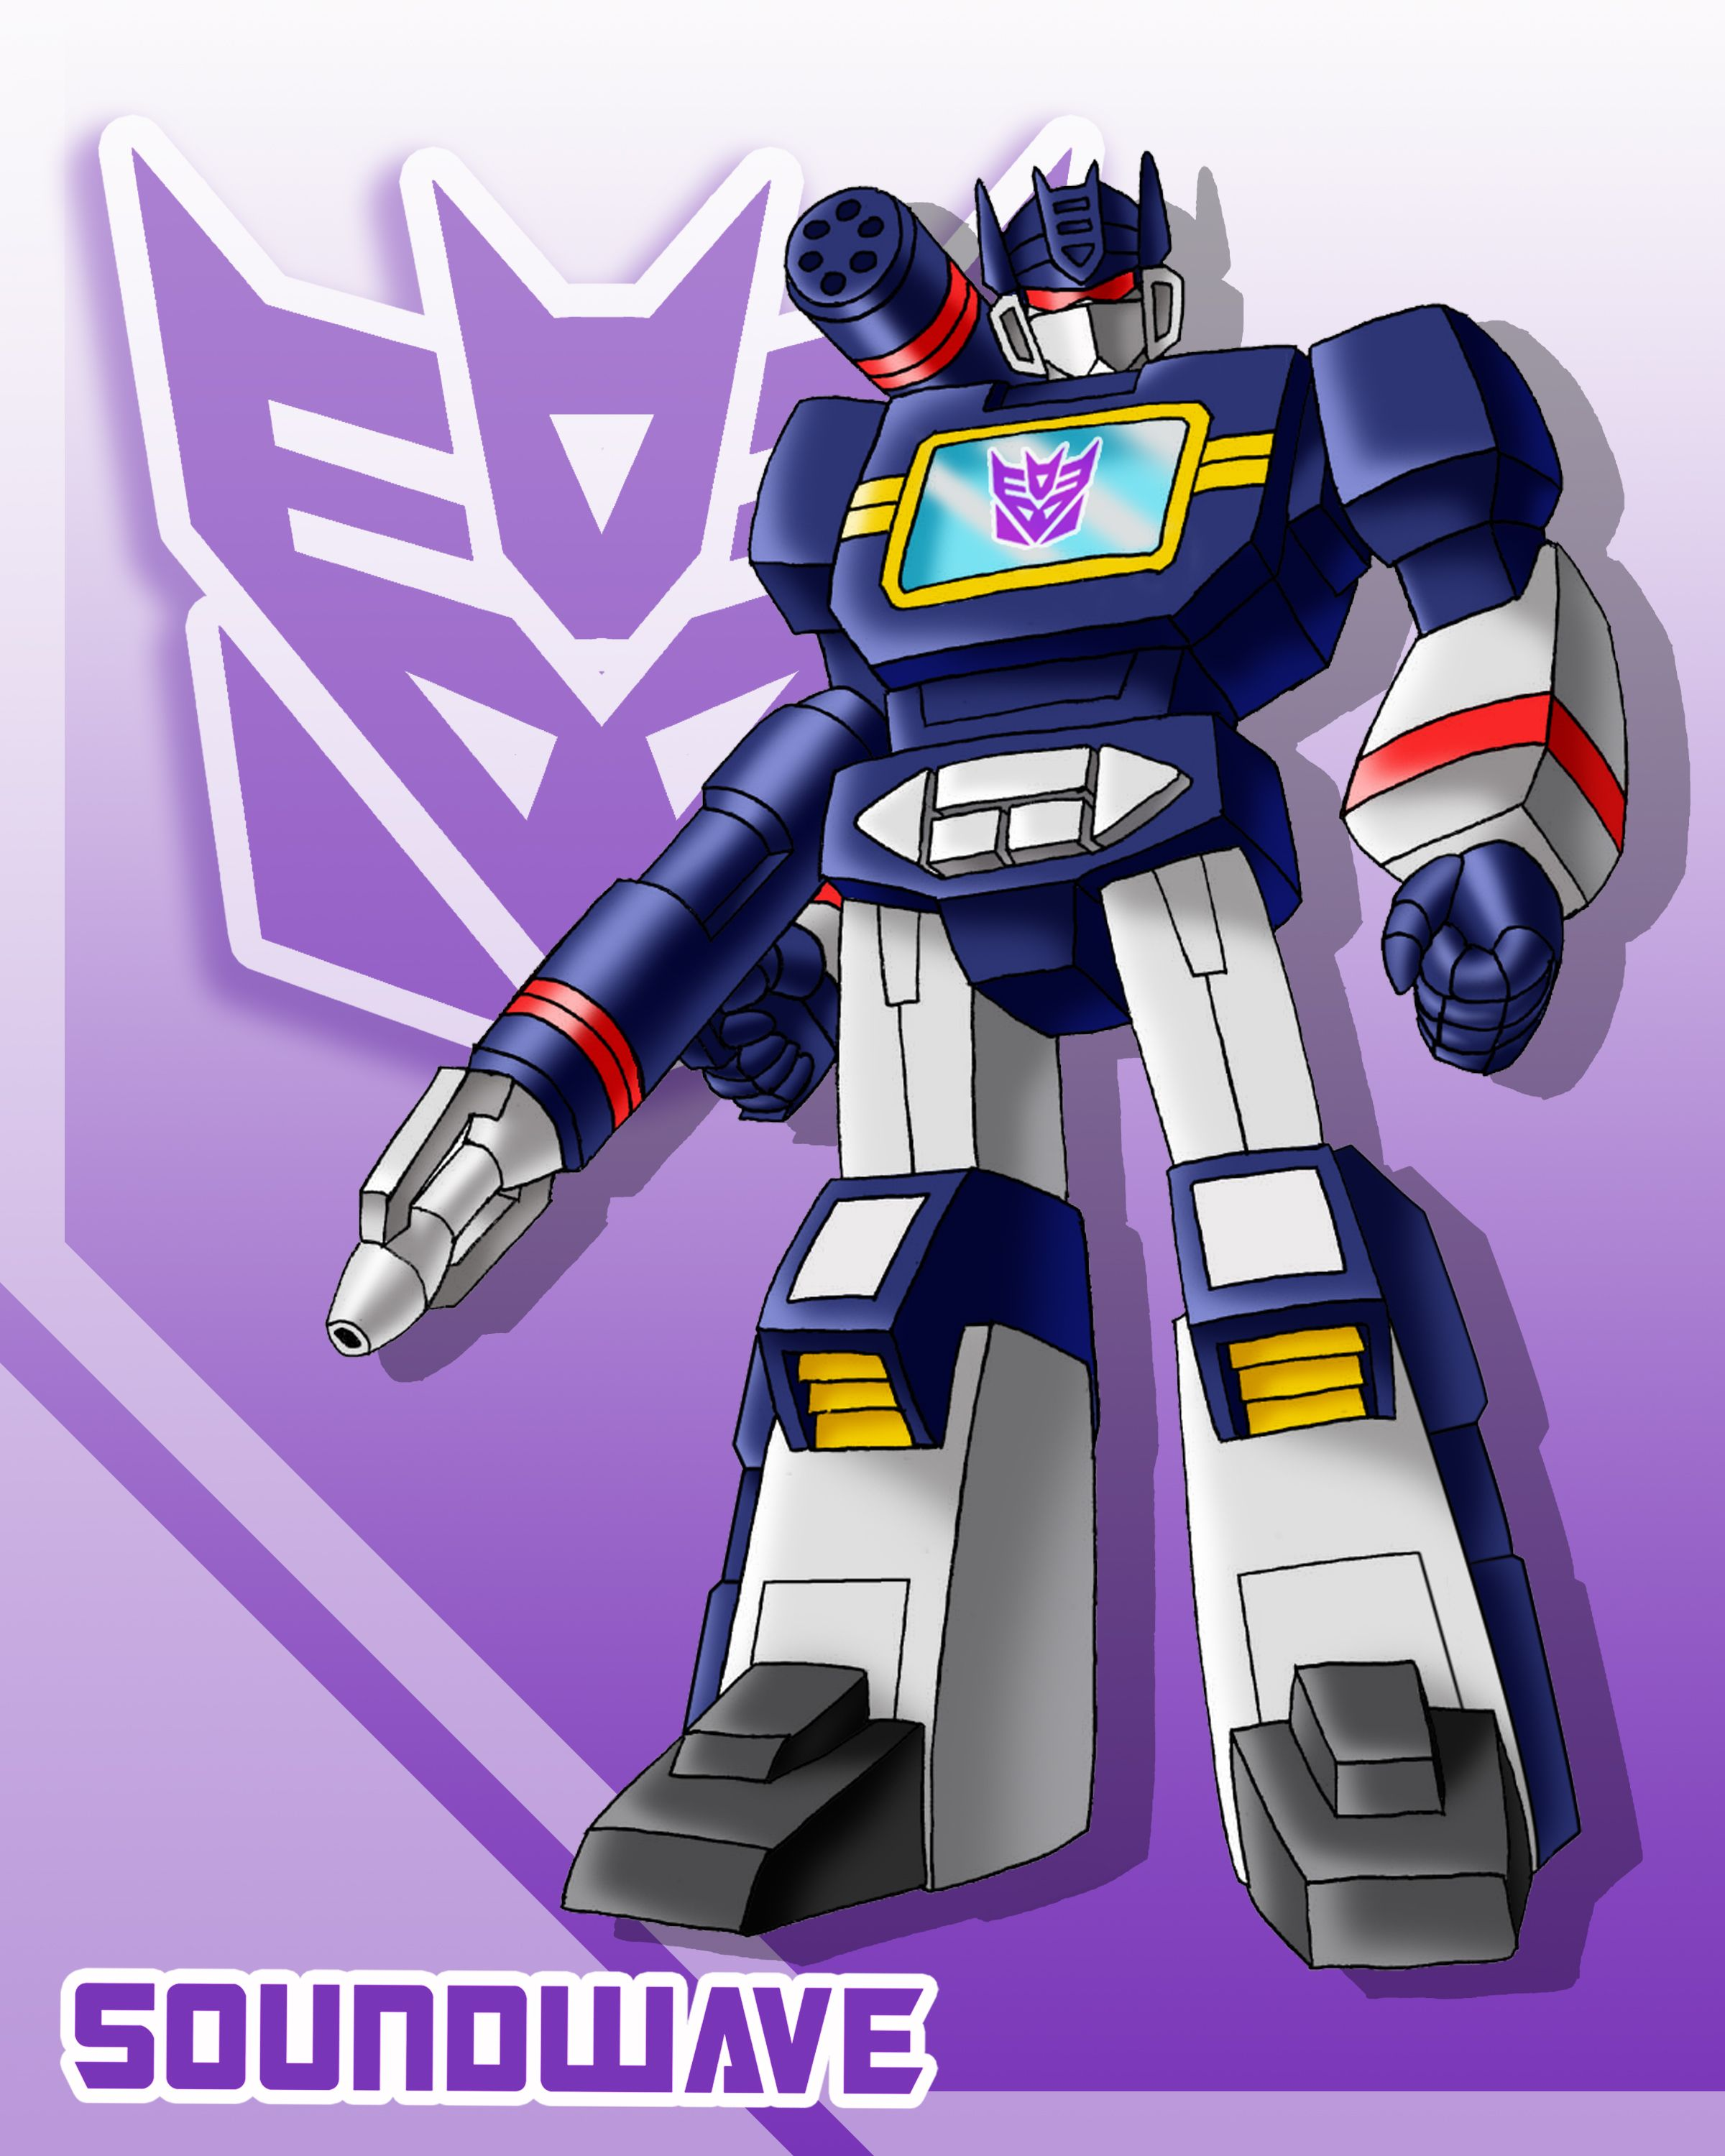 transformers fan dating Transformers is a series of american tom desanto joined murphy because he was a fan of paramount made a mistake in dating transformers 3—they asked me on.